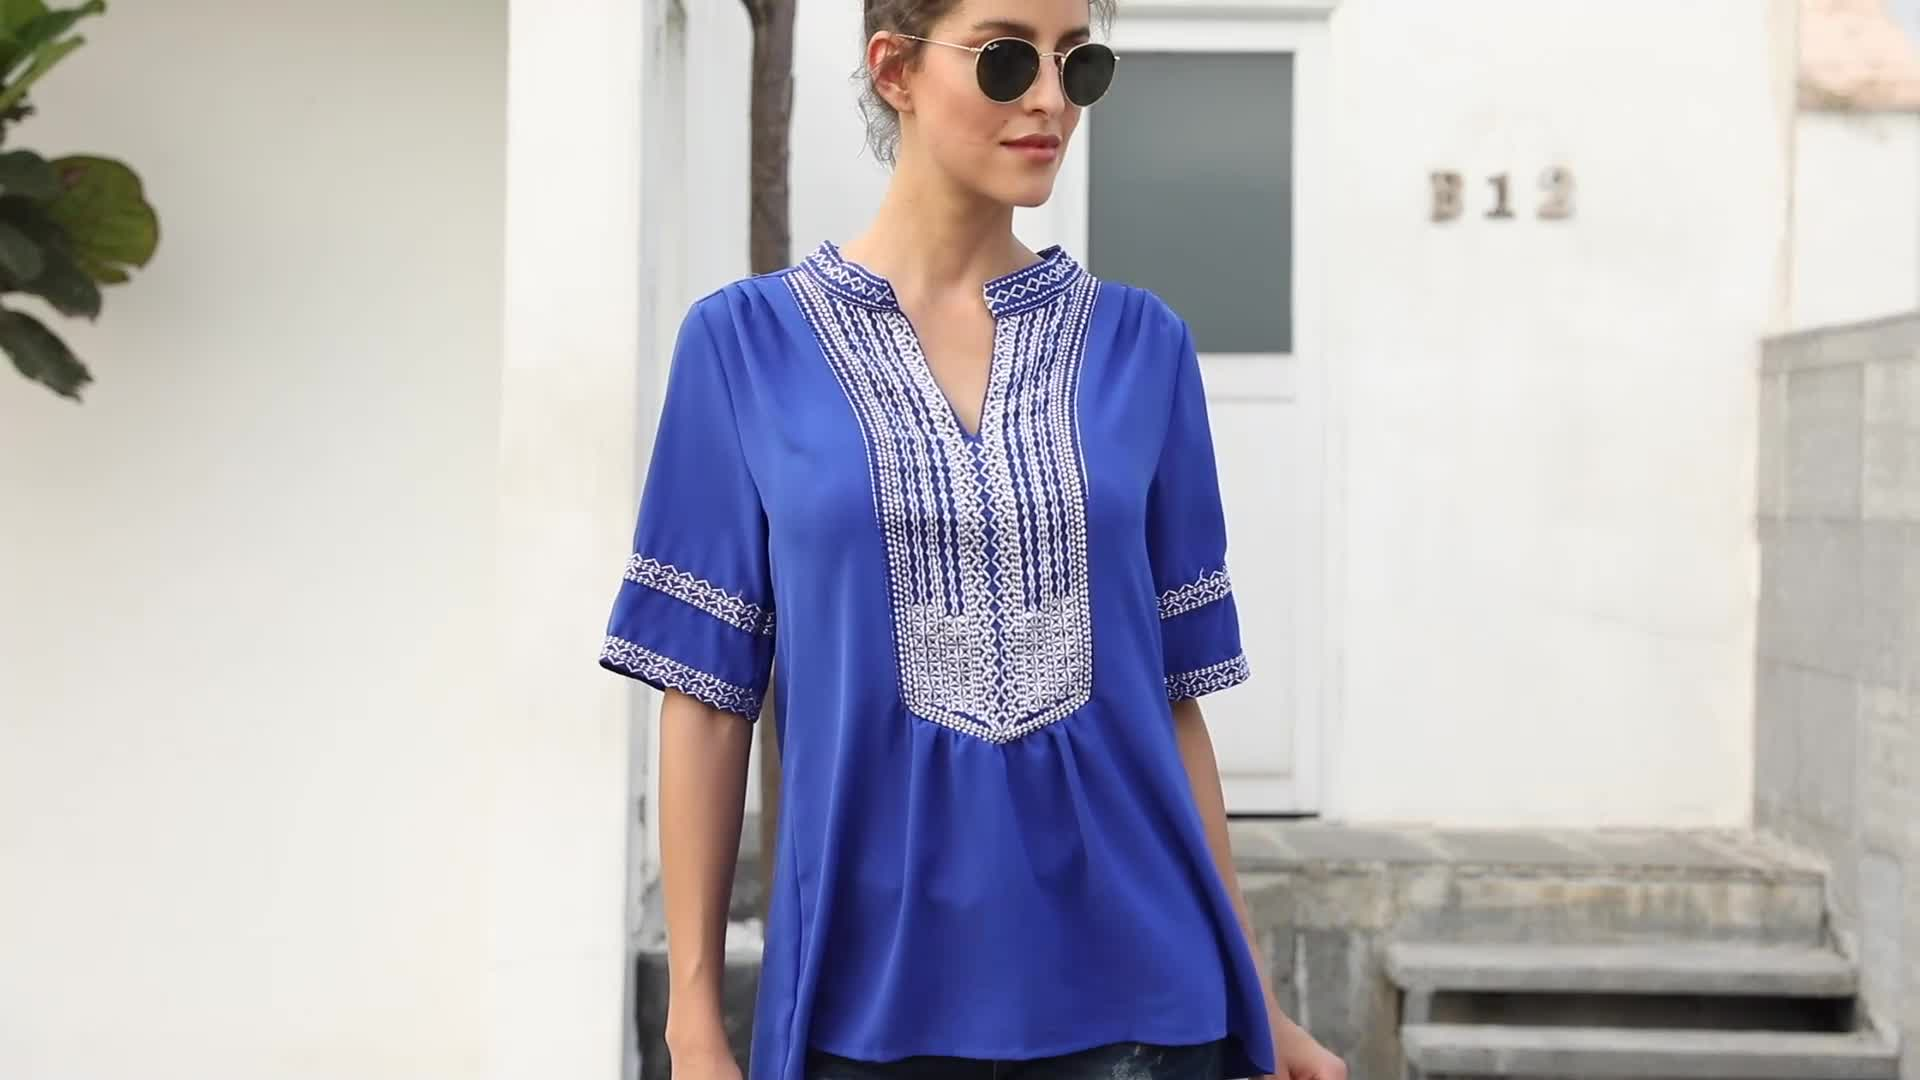 2019 New Fashion Women V Neck Elbow Length Short Sleeves Front Embroidery Blouse